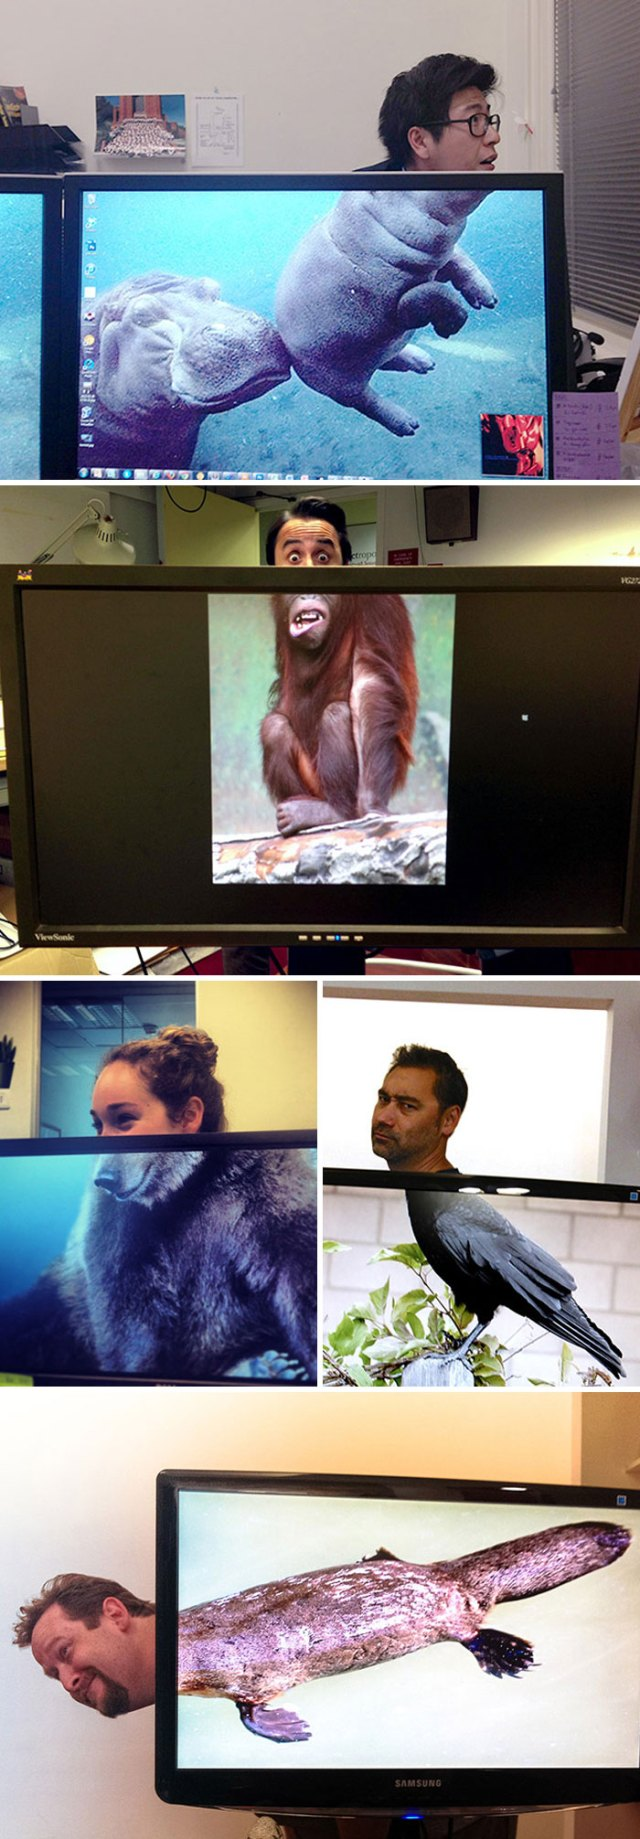 Office Safari. That's A Thing